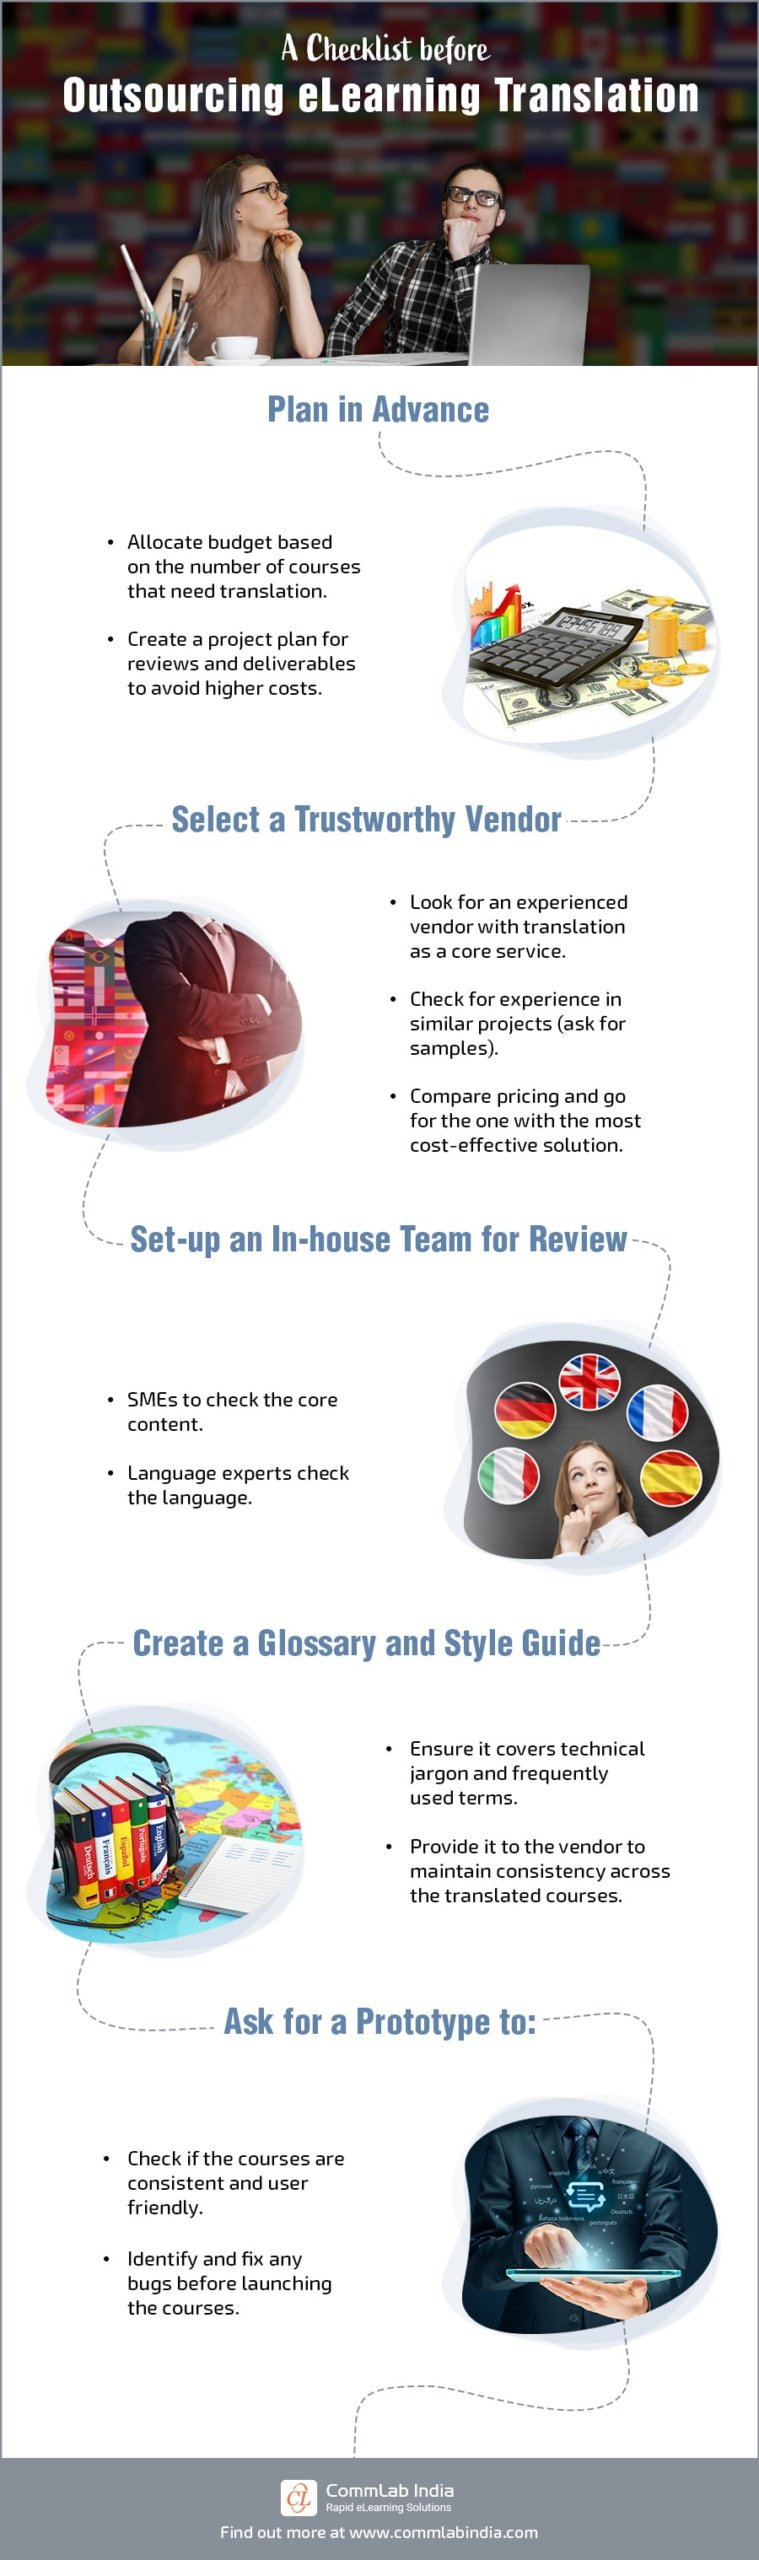 eLearning Translation: A 5-Point Checklist for Outsourcing